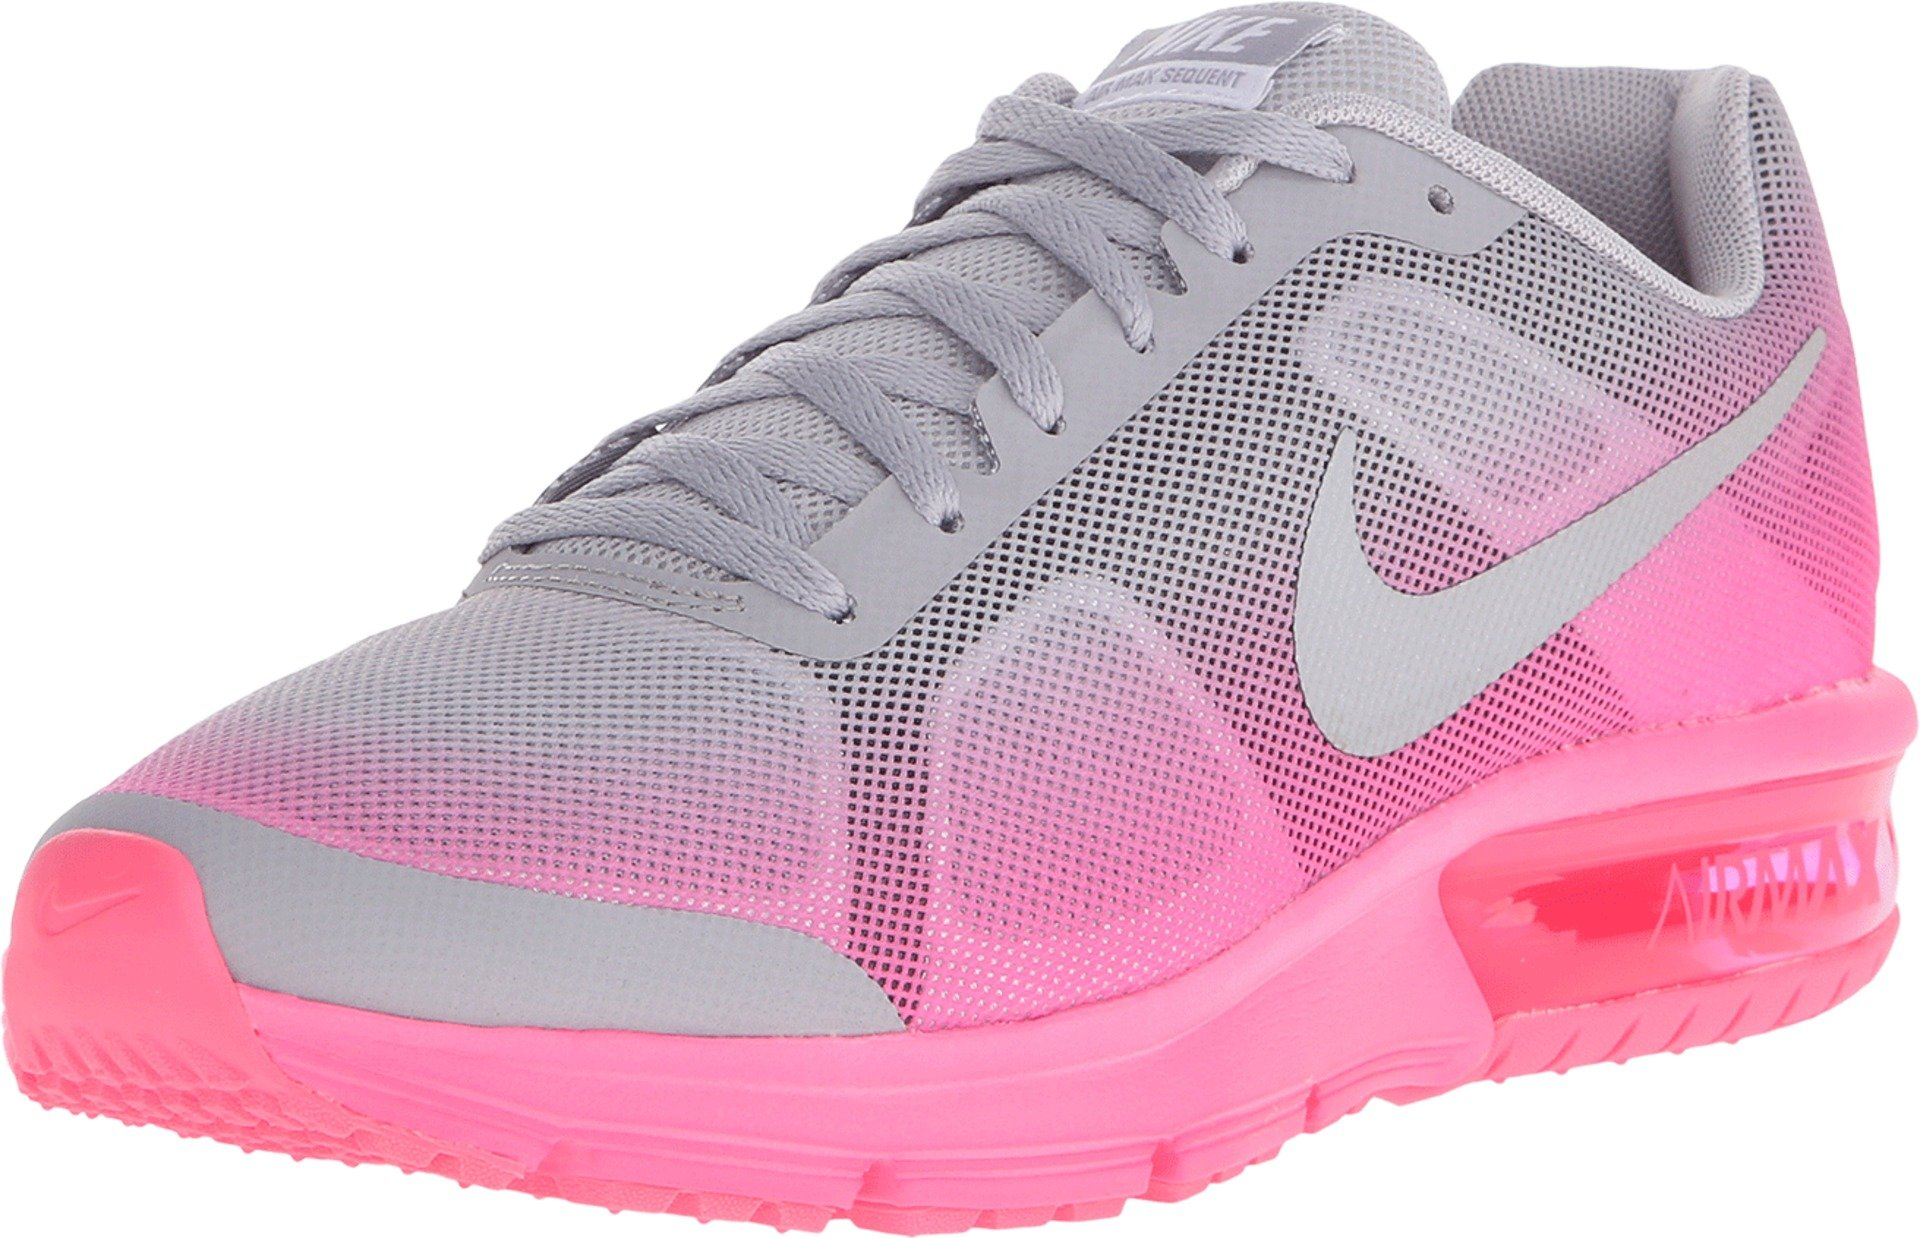 perdonar Llamarada Pegajoso  Nike Girl's Air Max Sequent (GS) Running Shoe Wolf Grey/Hyper Pink/Reflect  Silver Size 7 M US on Galleon Philippines